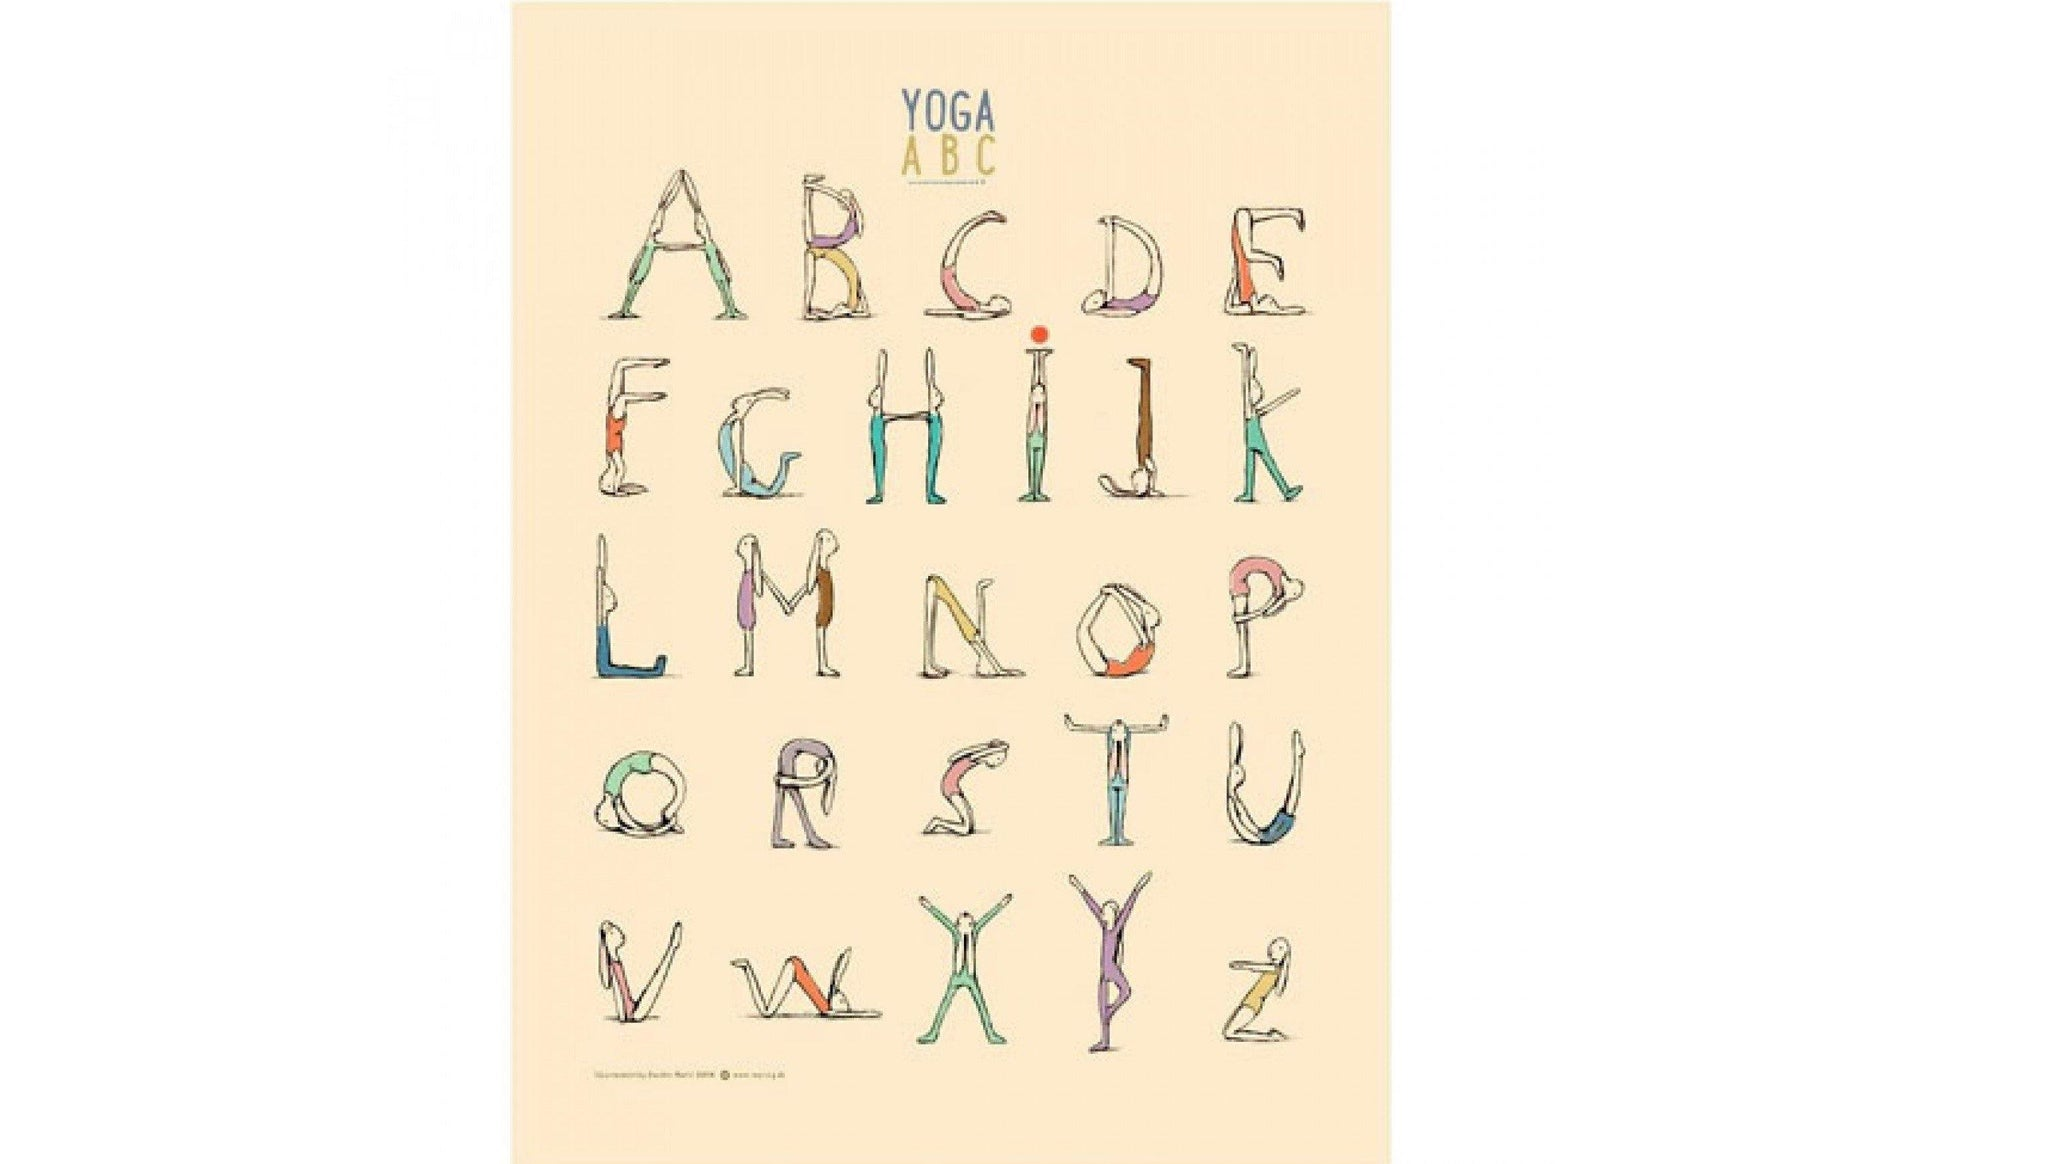 Yoga ABC Poster made by Loula and Deer